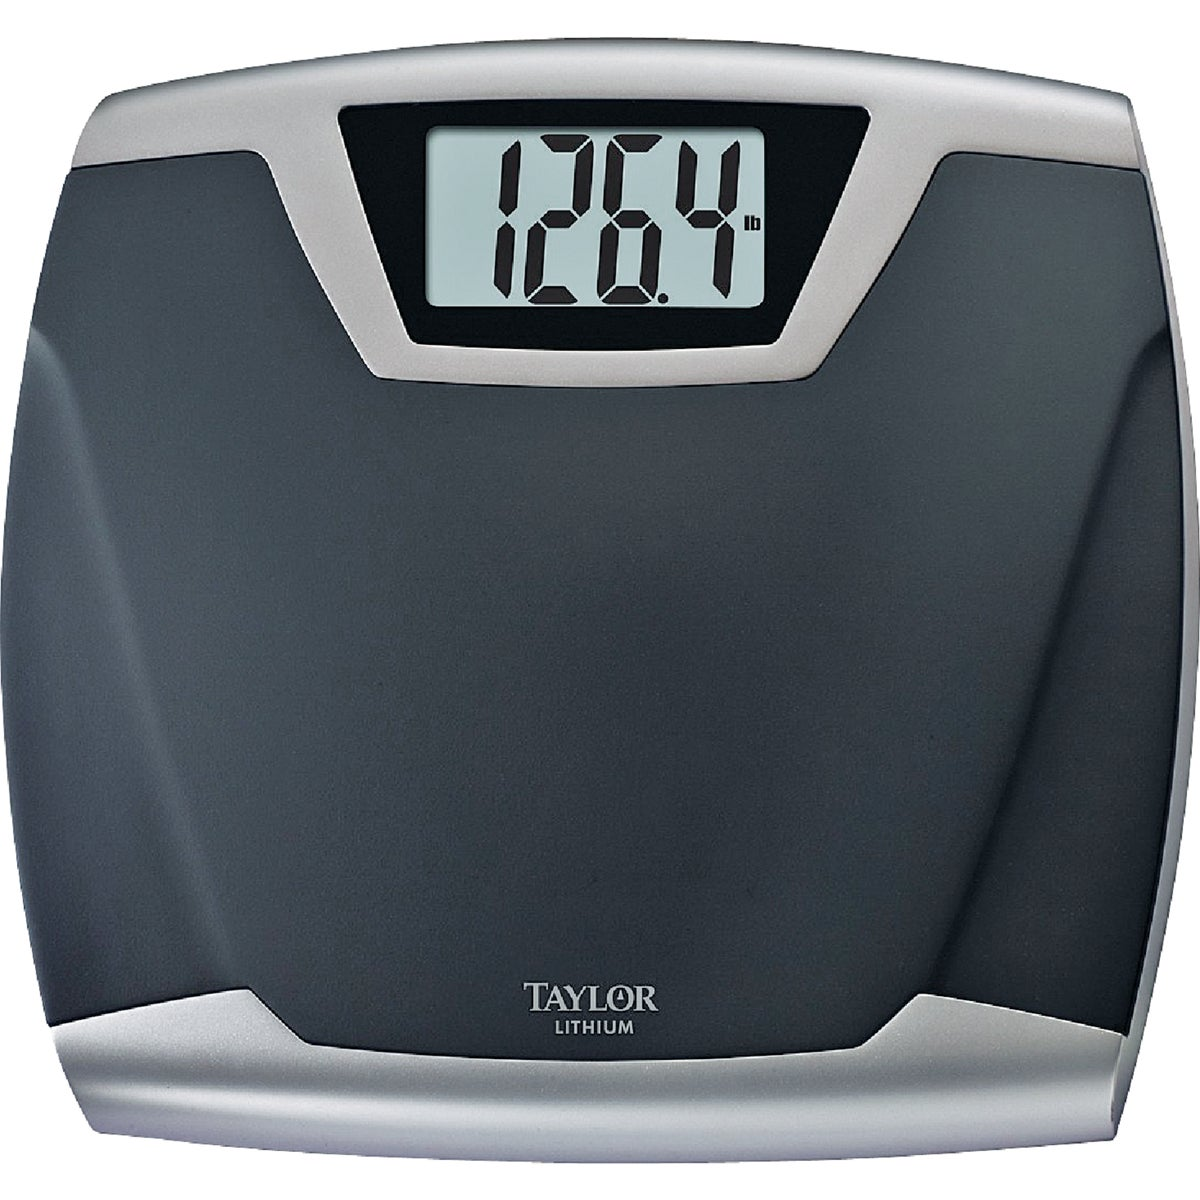 440LB DIGITAL BATH SCALE